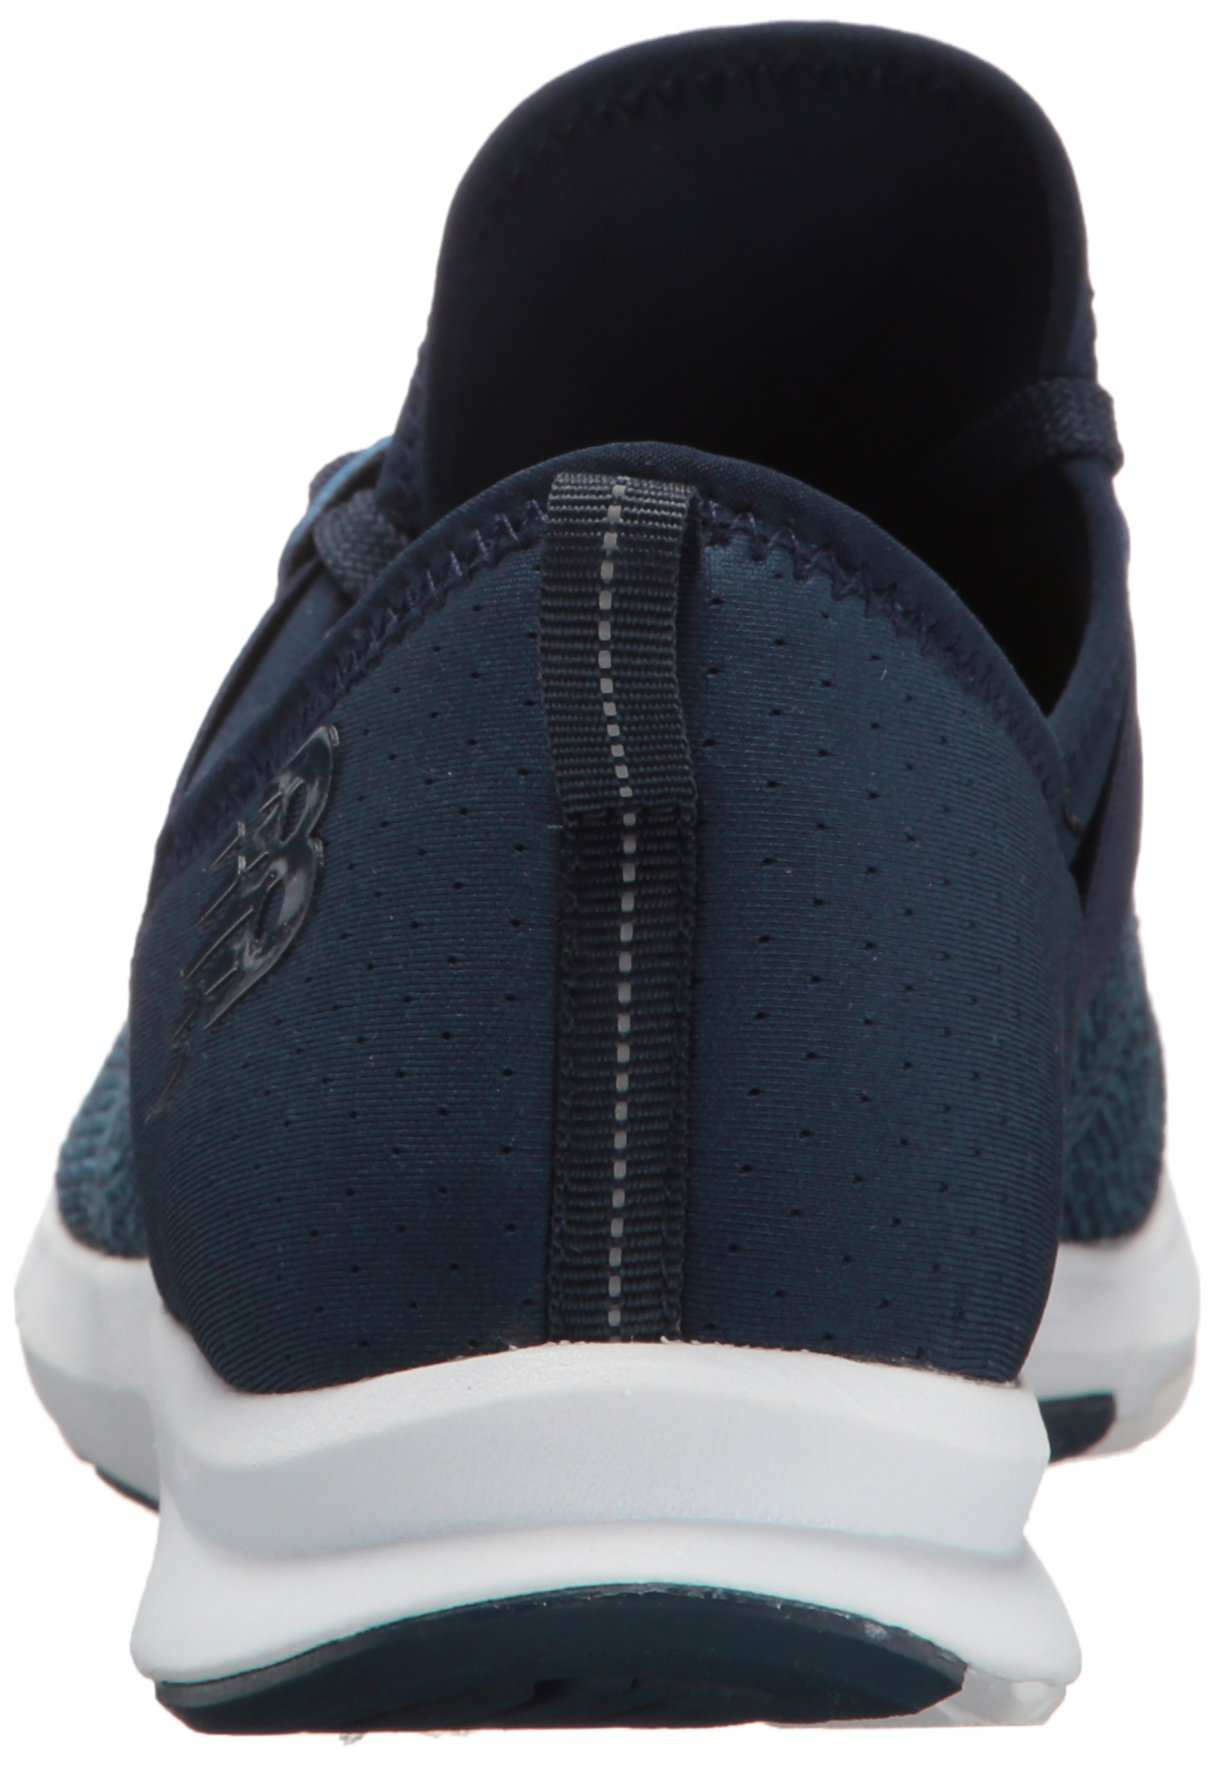 New Balance Women's FuelCore Nergize v1 FuelCore Training Shoe, Navy, 8 D US by New Balance (Image #2)